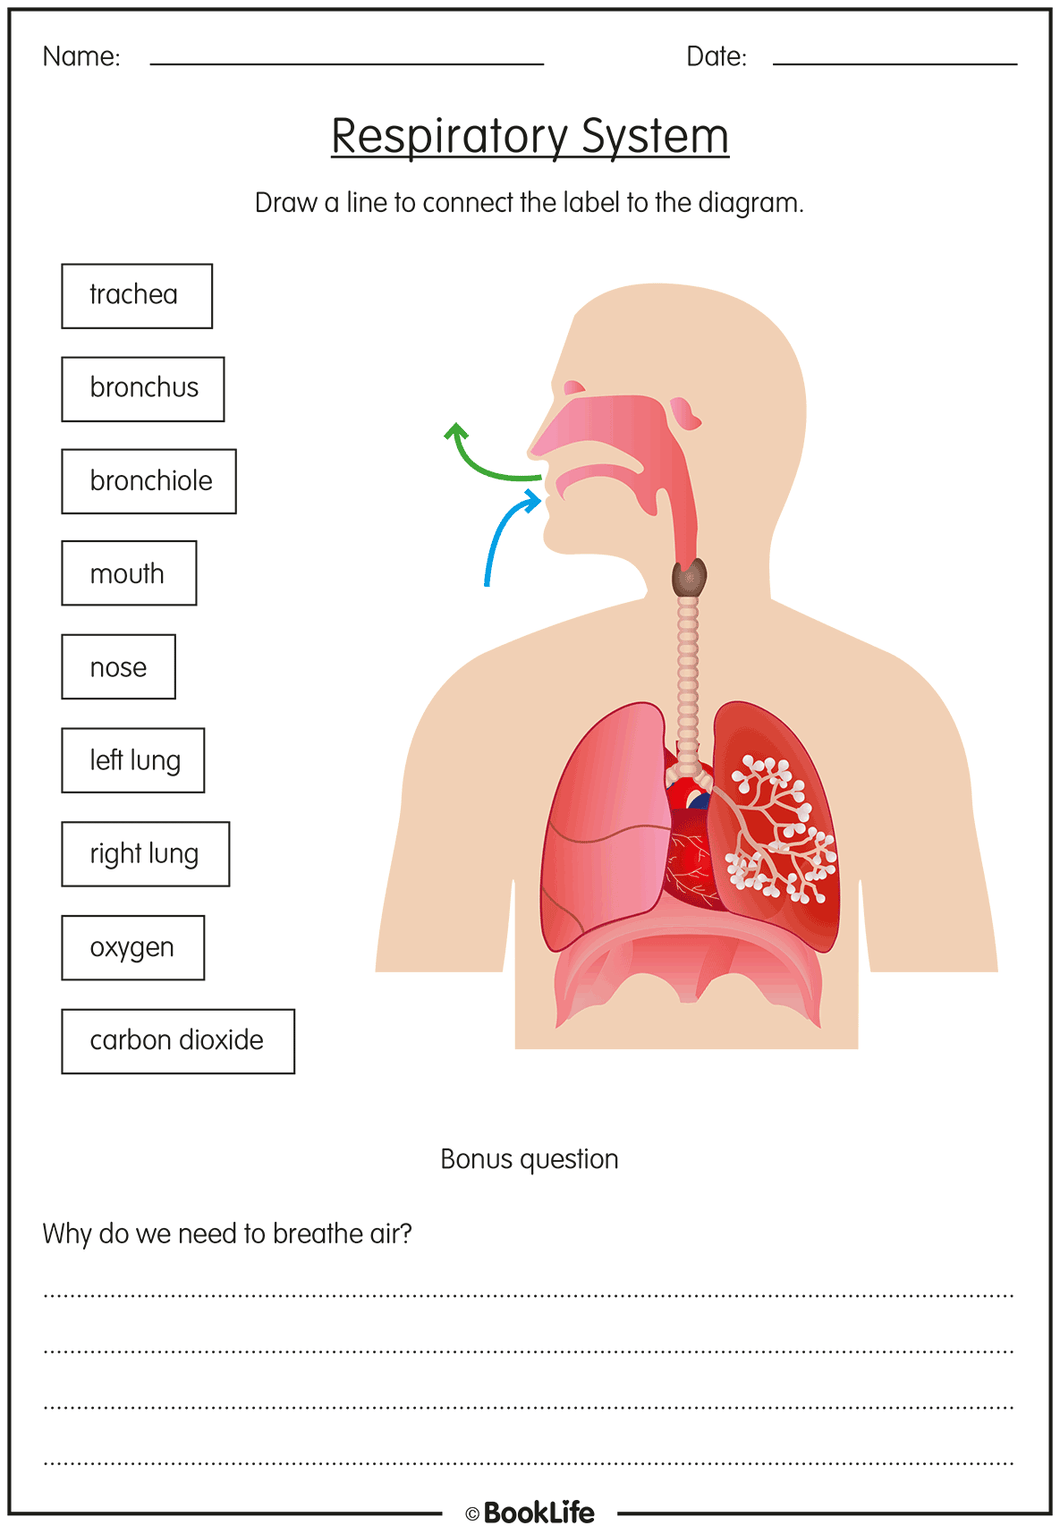 The Respiratory System by BookLife